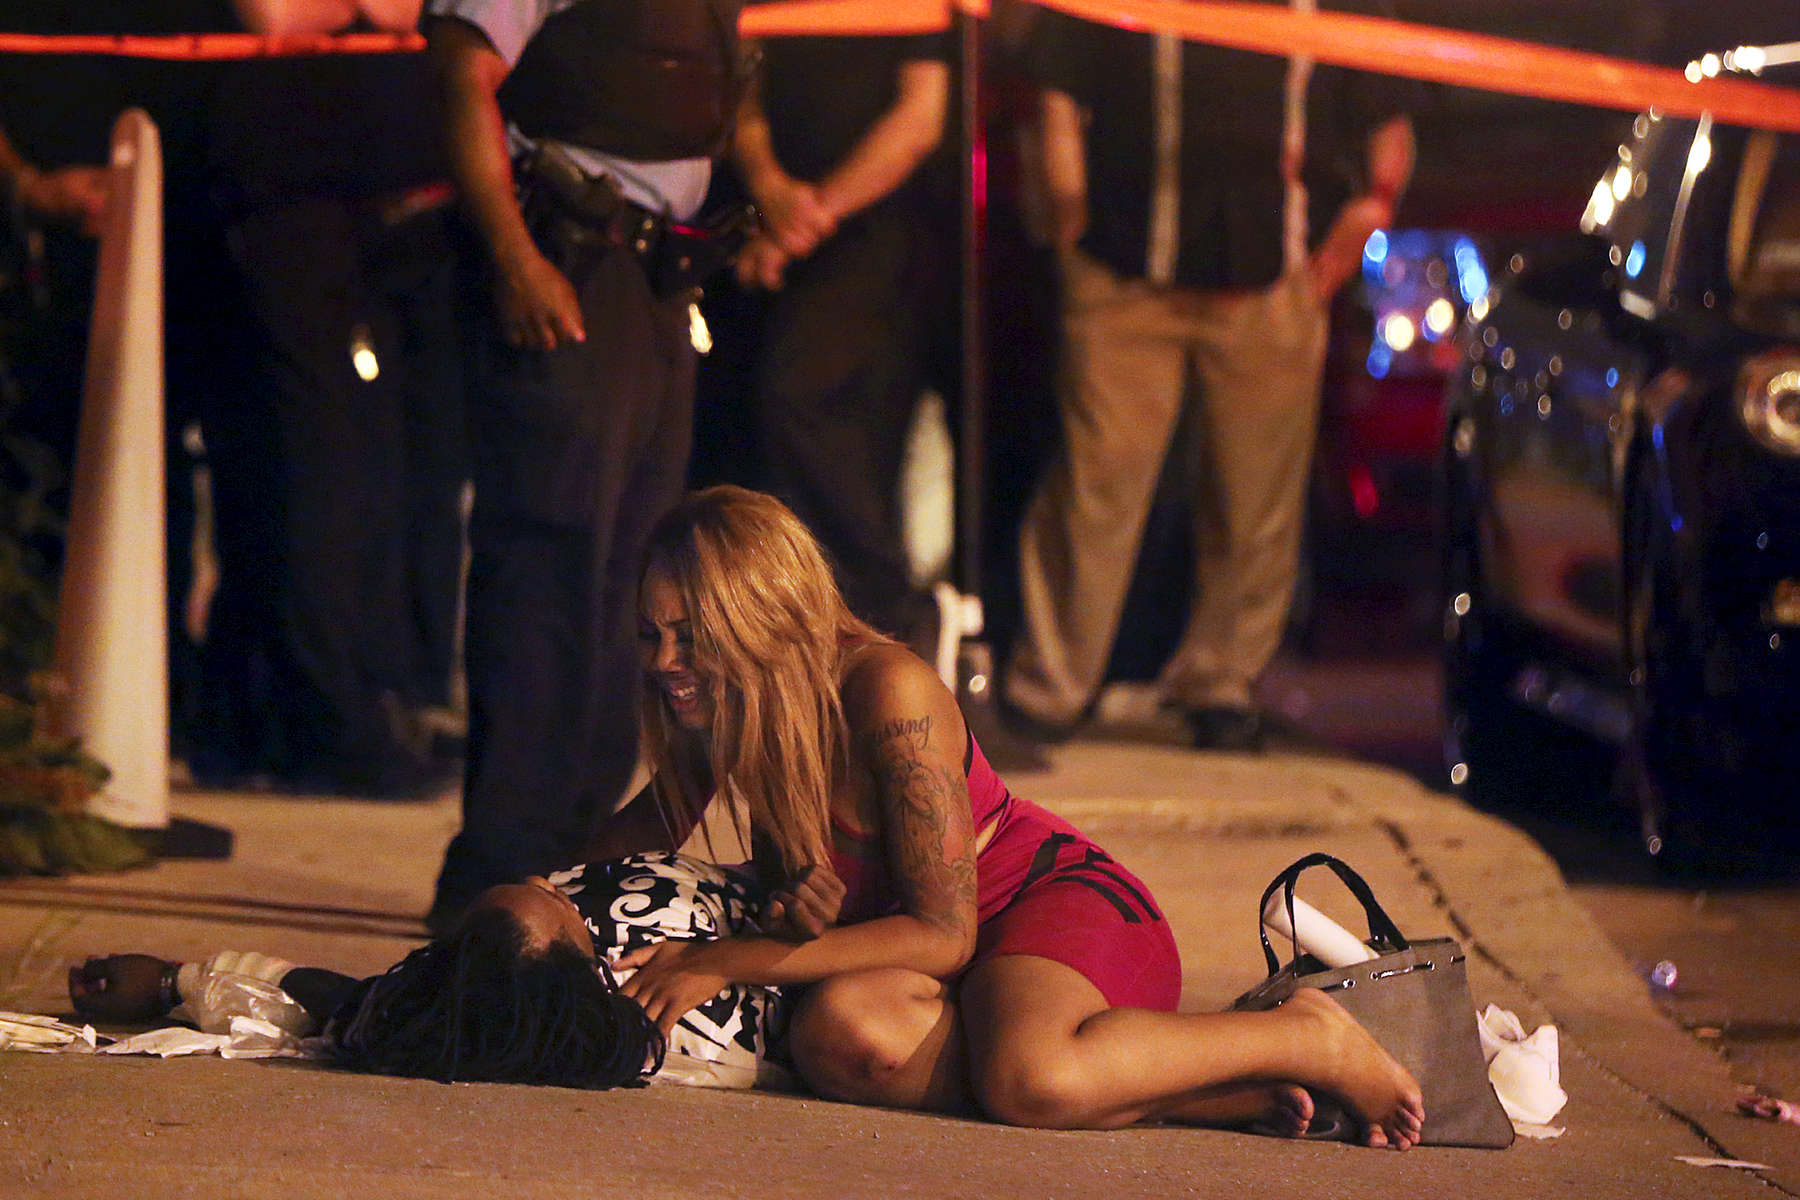 A woman comforted a shooting victim as paramedics went for a stretcher at the scene where two people were shot, one of whom was killed, in the 800 block of North Orleans Street in Chicago.